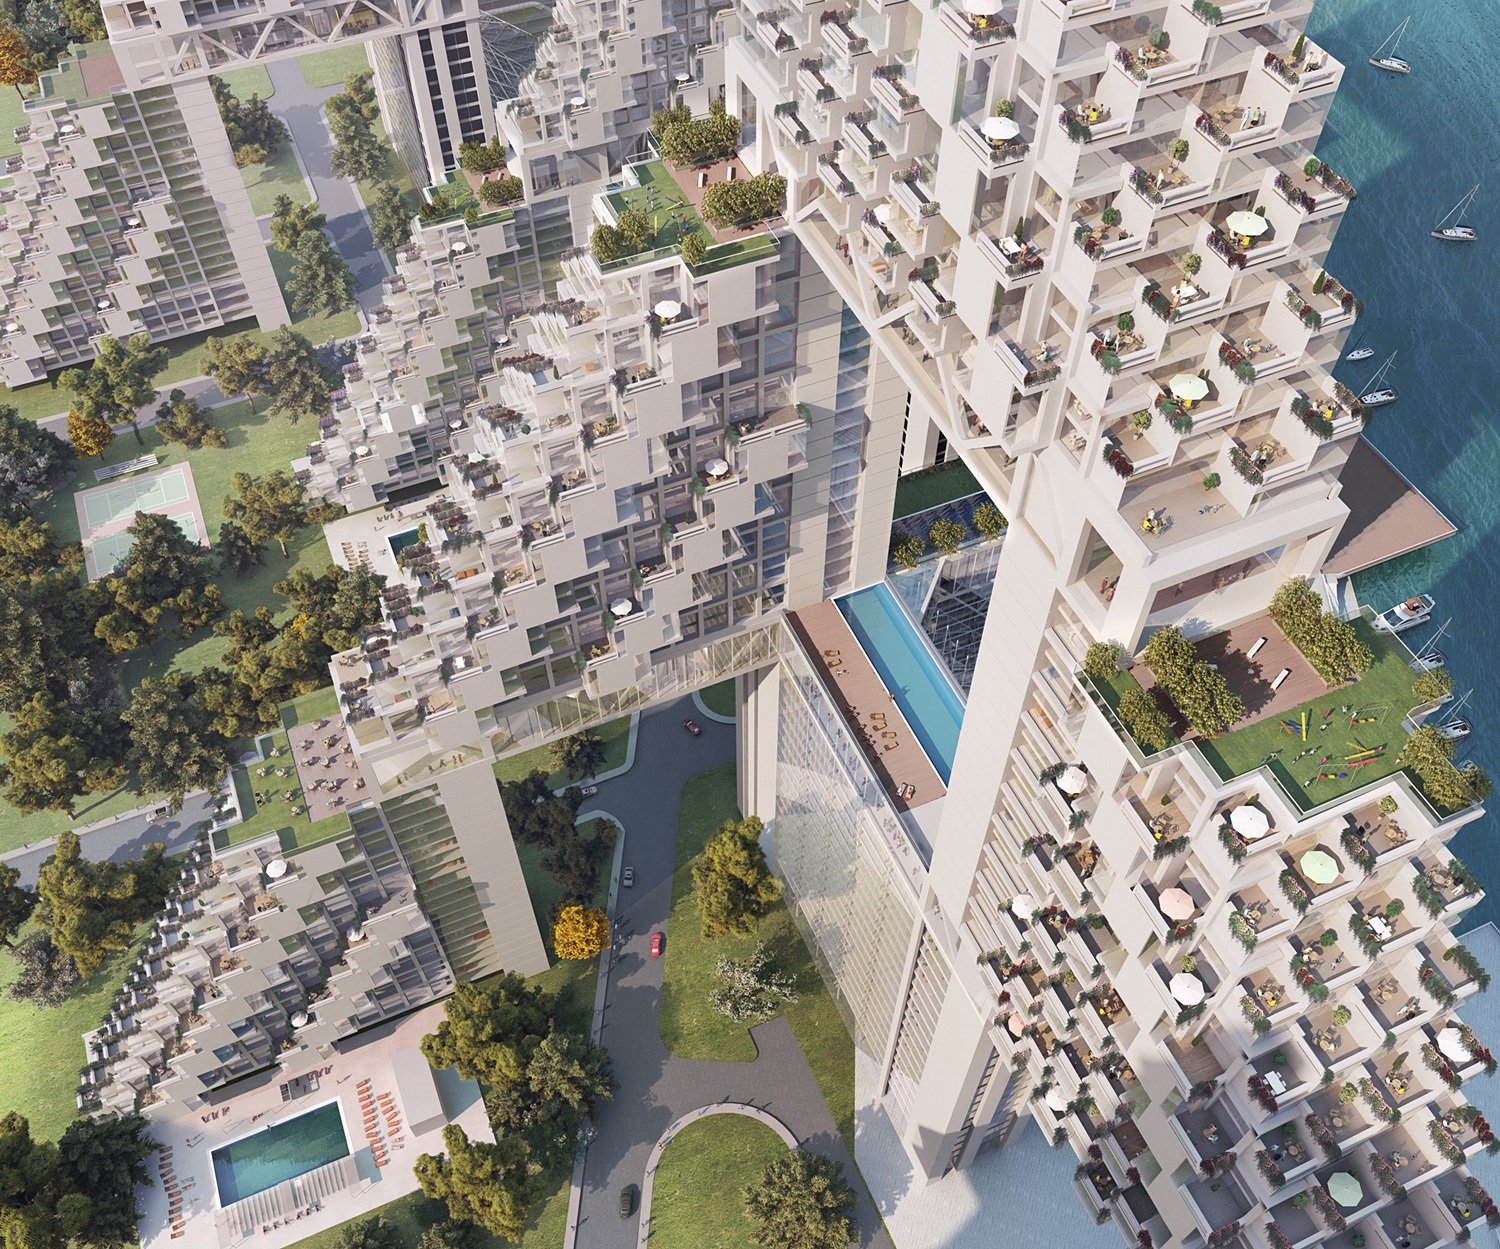 Moshe safdie exhibit to launch bsa series of boston rooted for Construction habitat